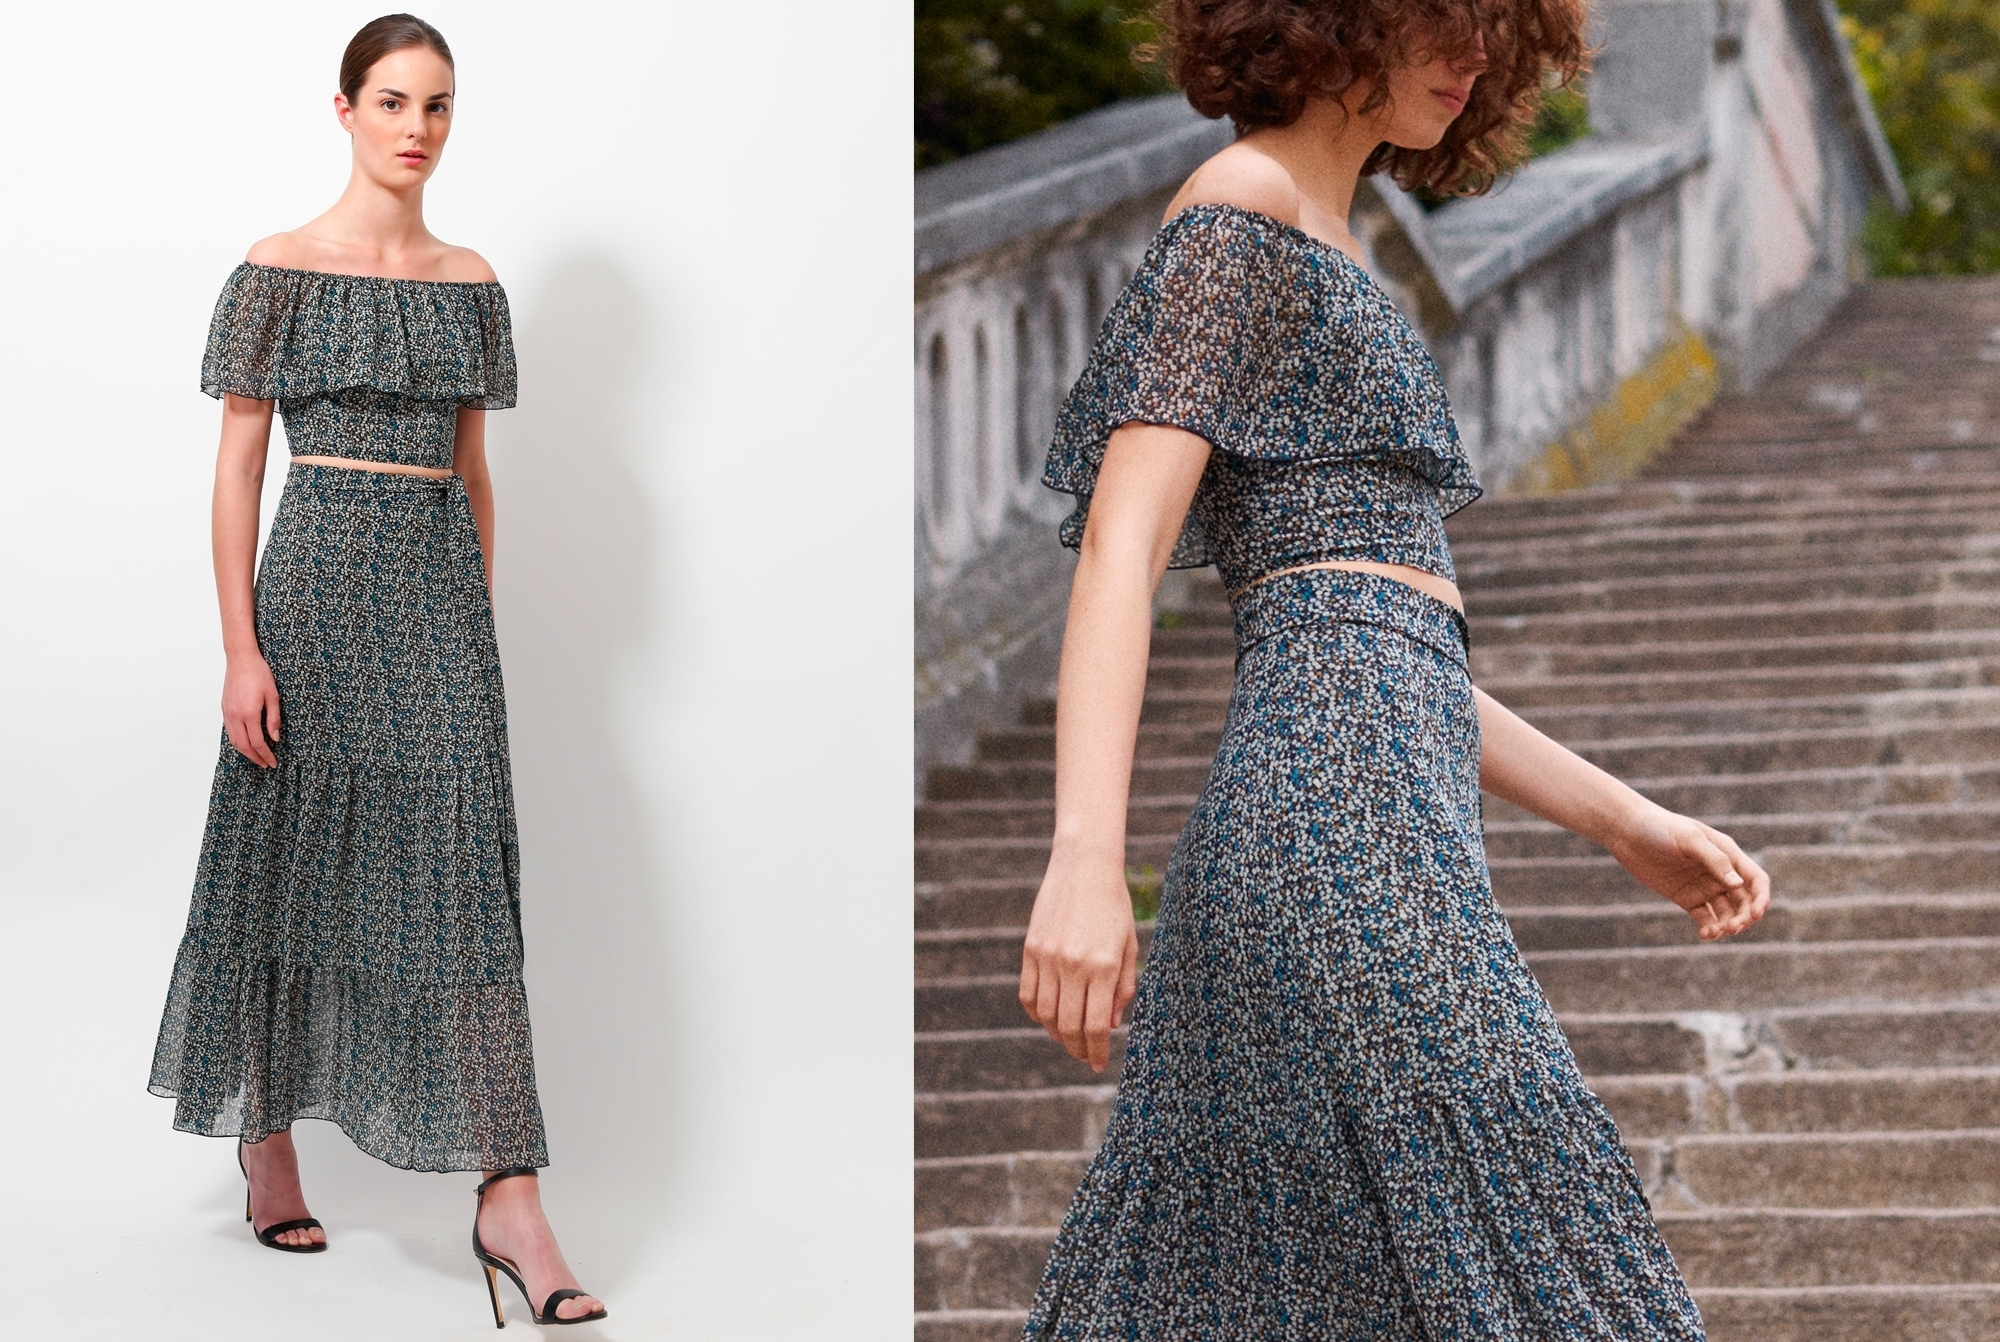 The Loulou Ensemble is the perfect bohemian piece for those long summer days and nights